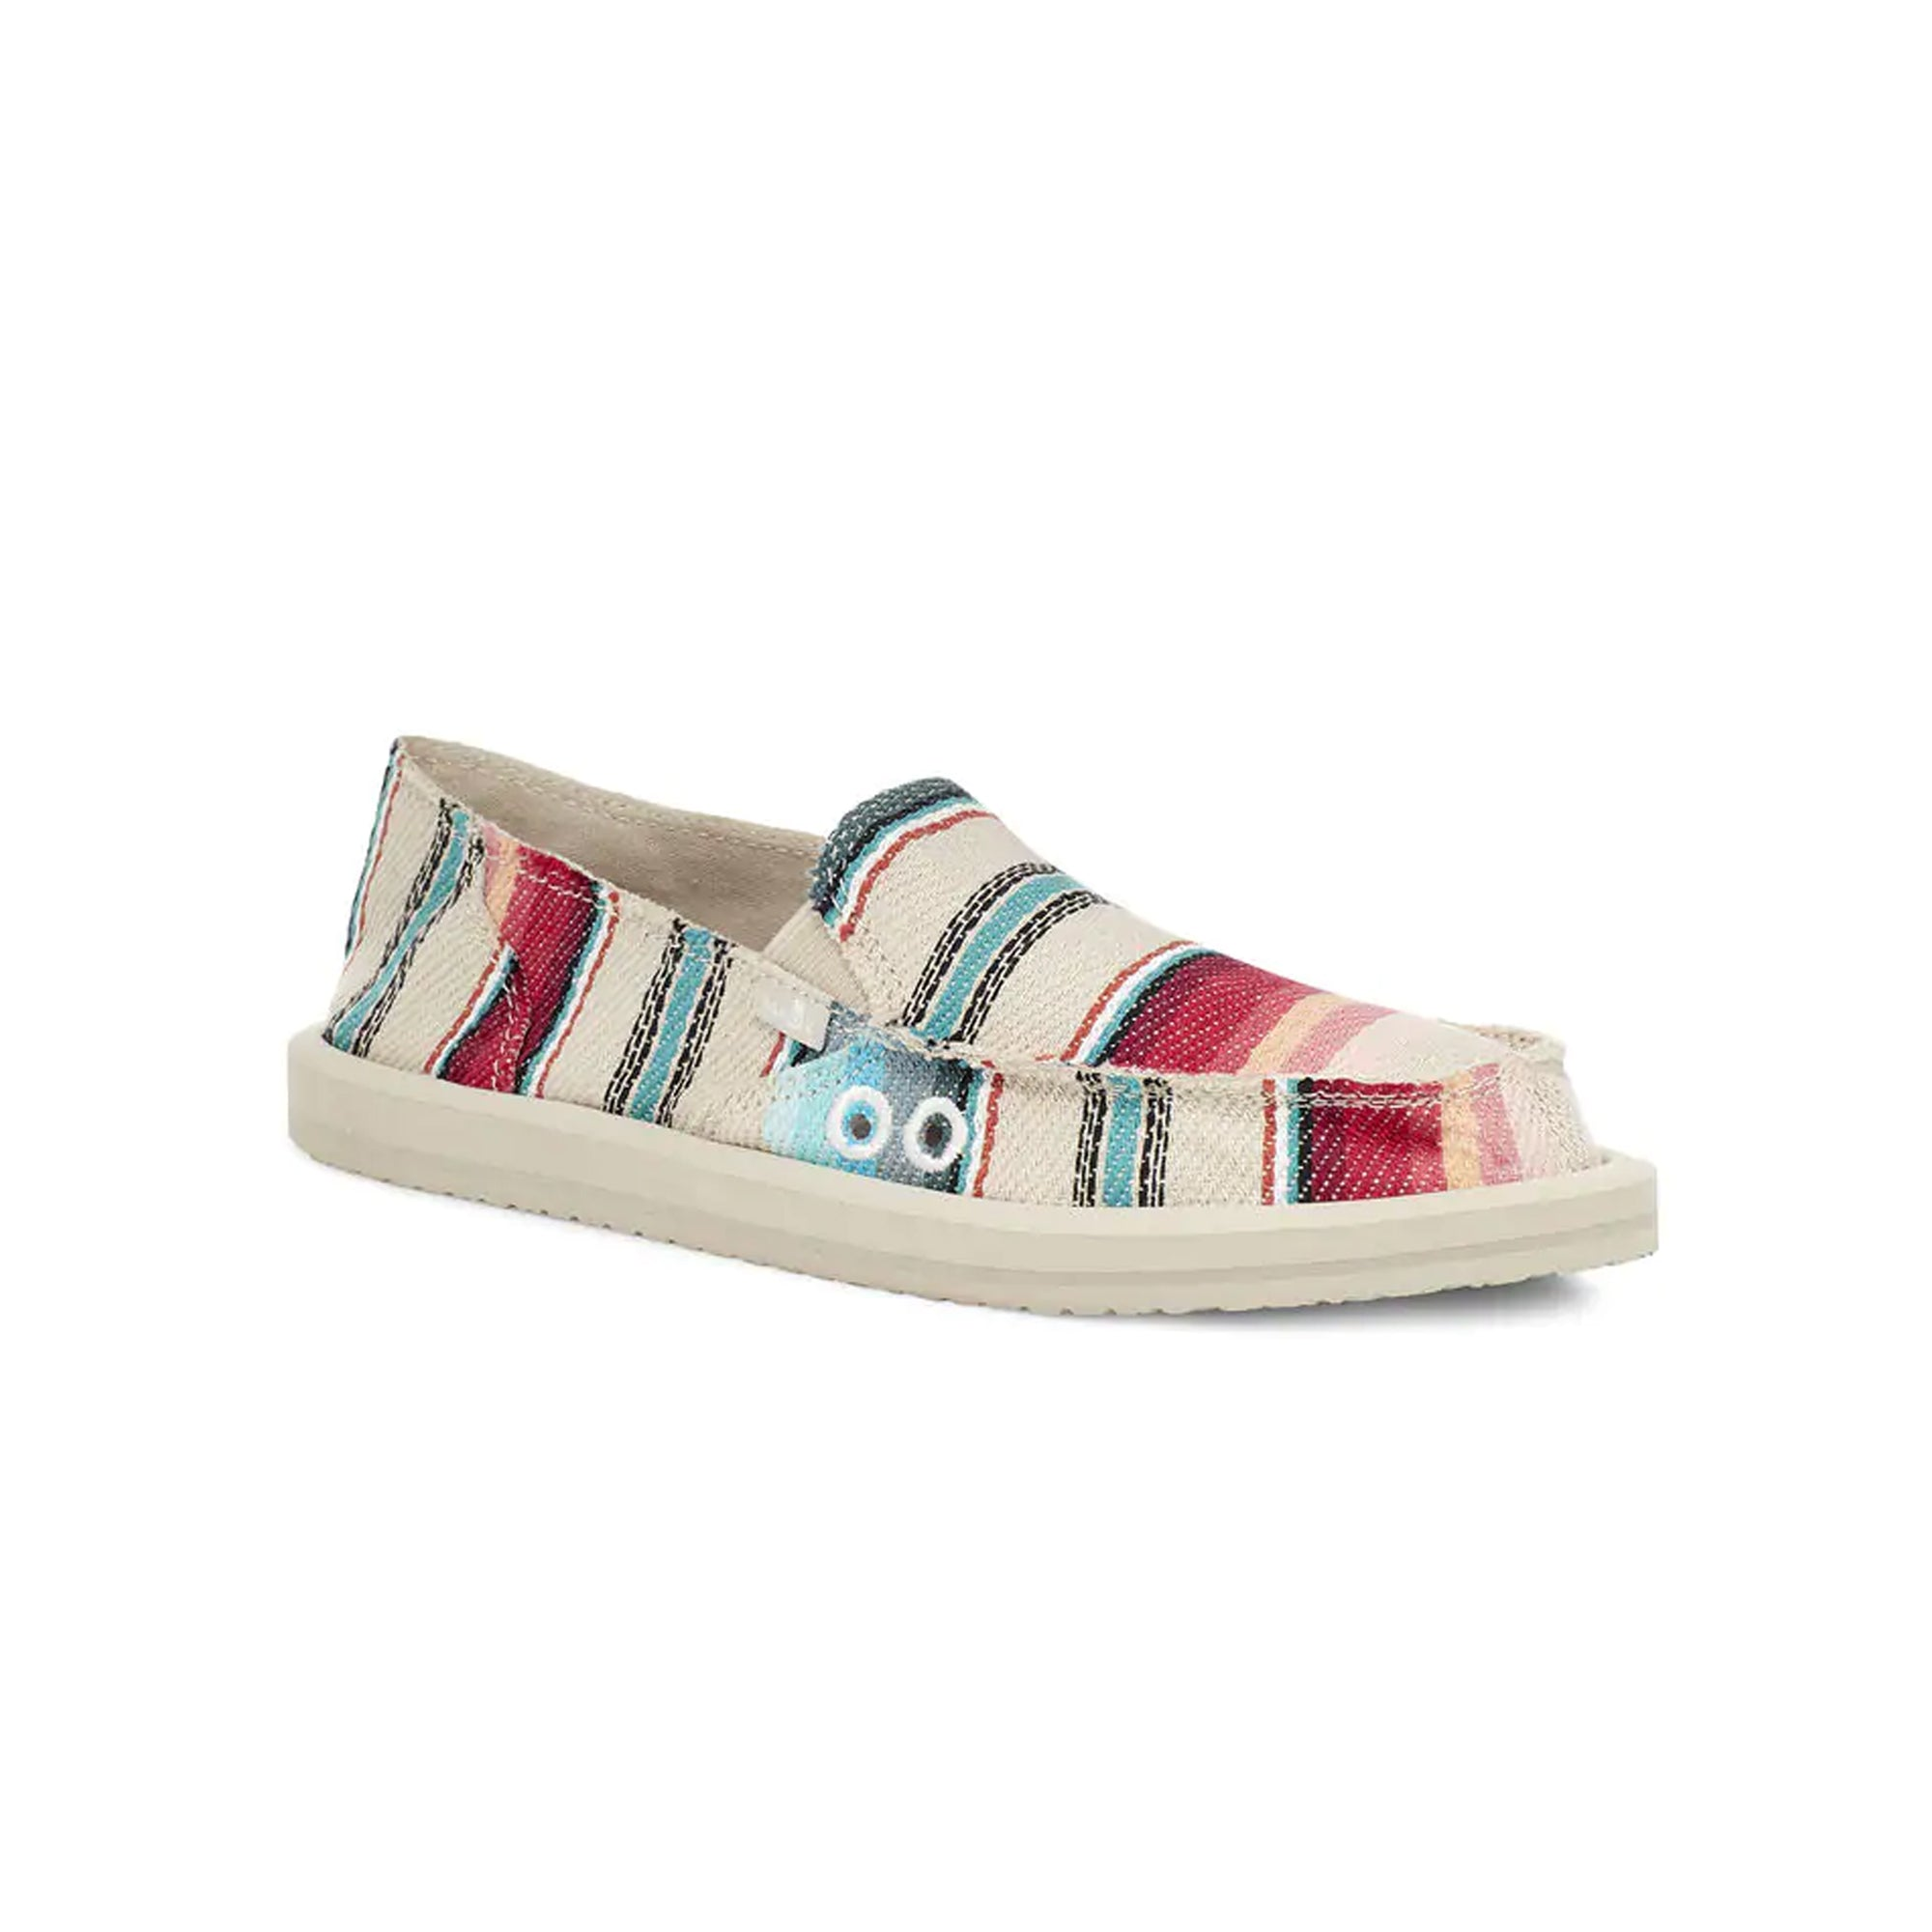 Sanuk Donna Blanket Women's Shoes